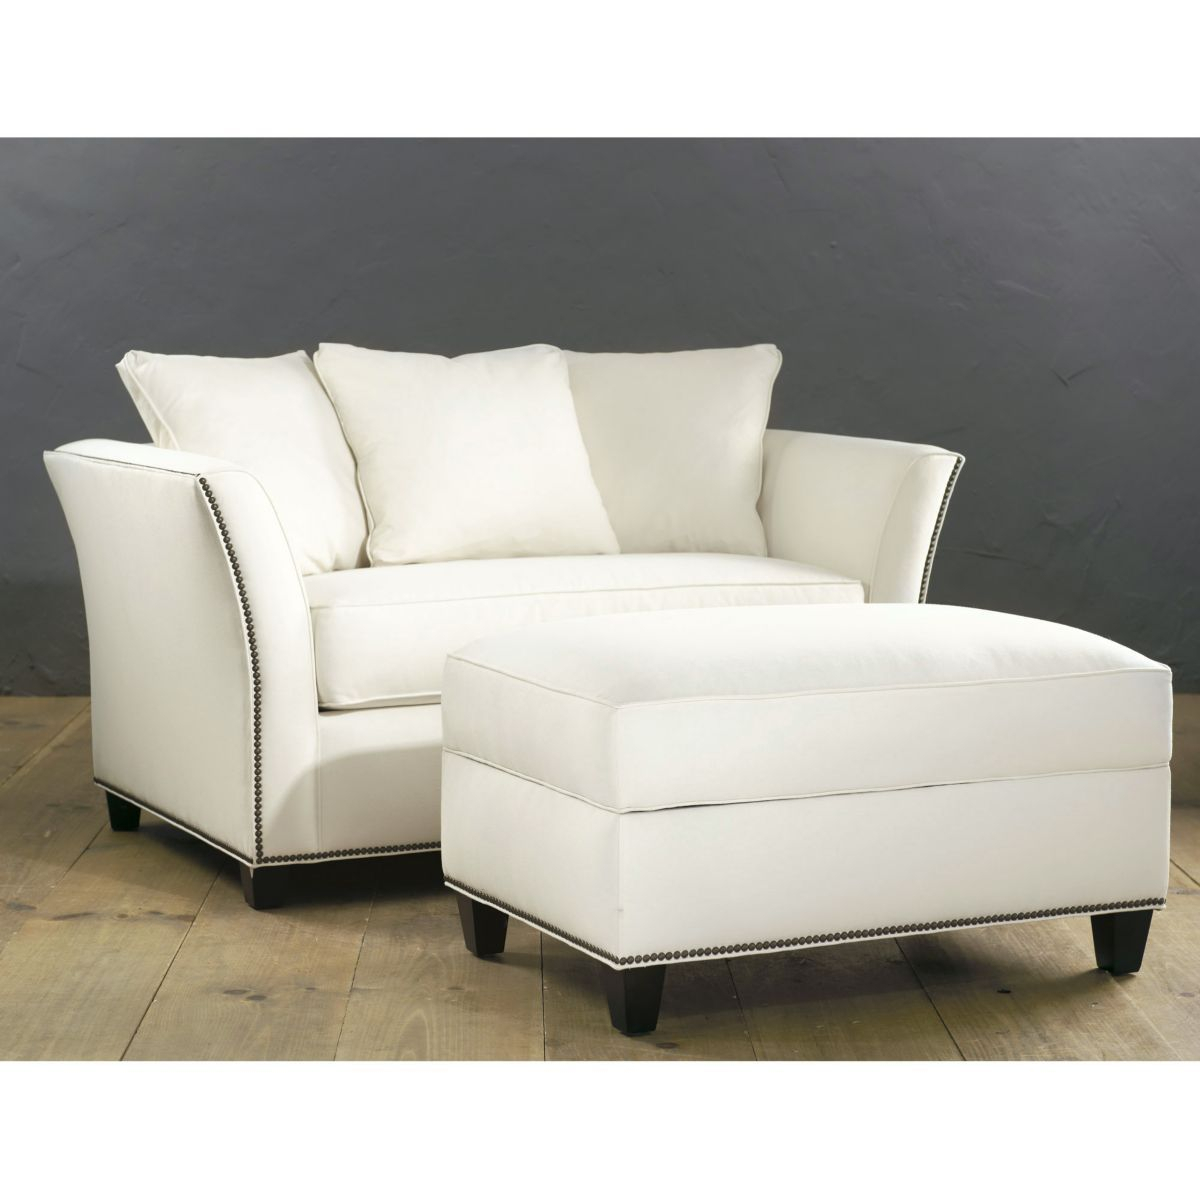 Tate Twin Sleeper With Storage Ottoman In Chippendale Gray | For The Pertaining To Tate Ii Sofa Chairs (Image 19 of 20)